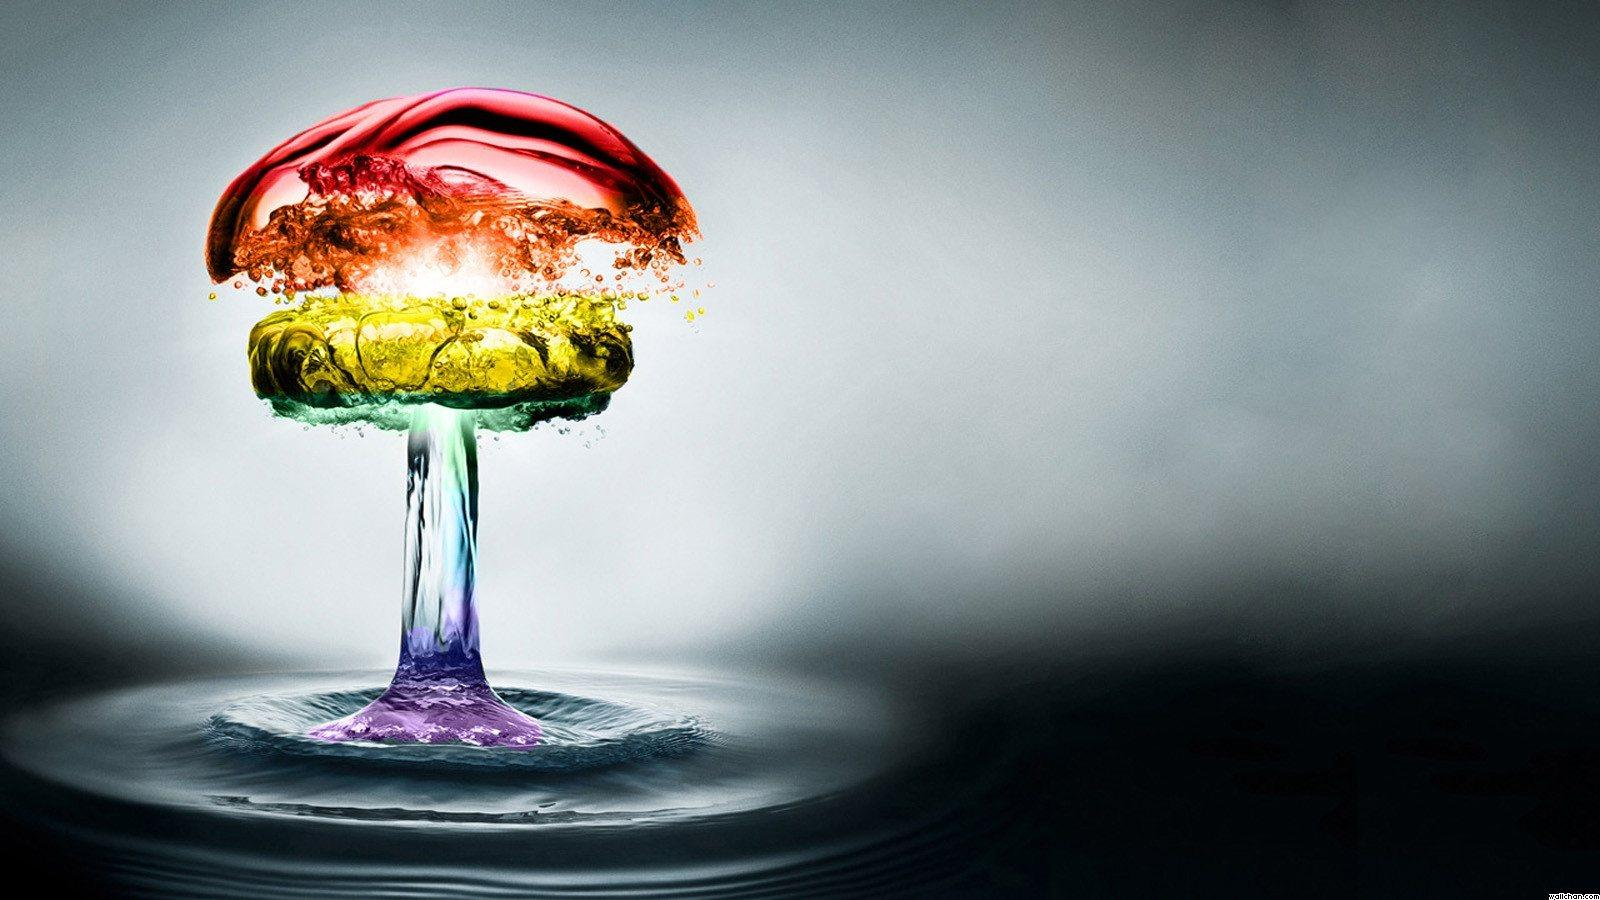 awesome desktop backgrounds HD wallpapers Fine Wallpaperss 1600x900